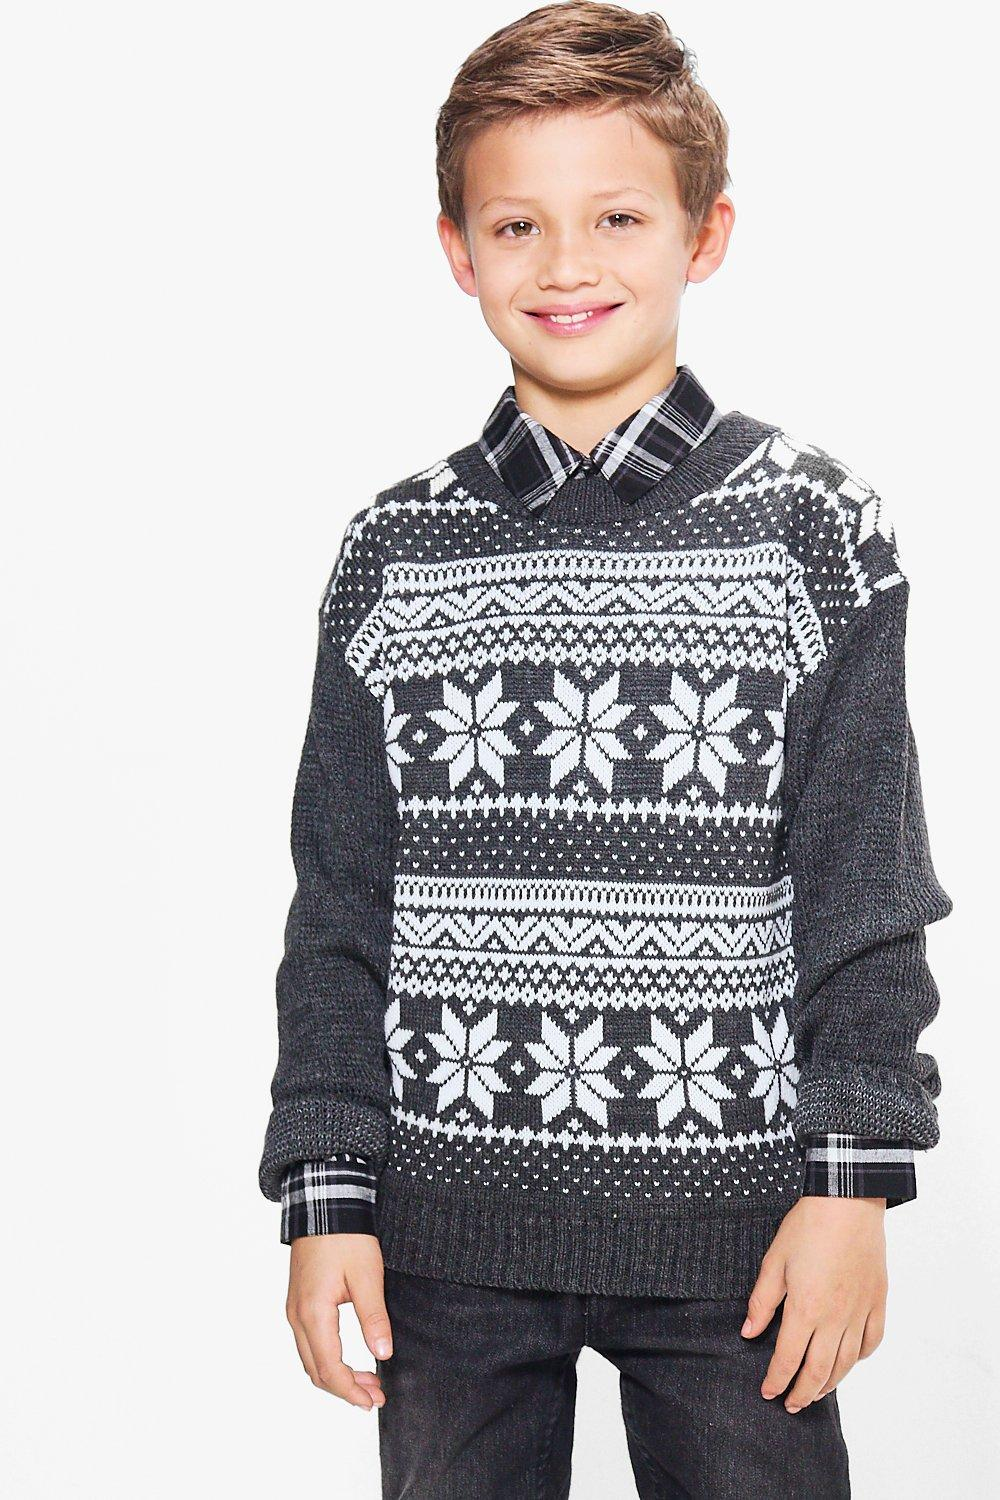 Fairisle Knitted Christmas Jumper  charcoal